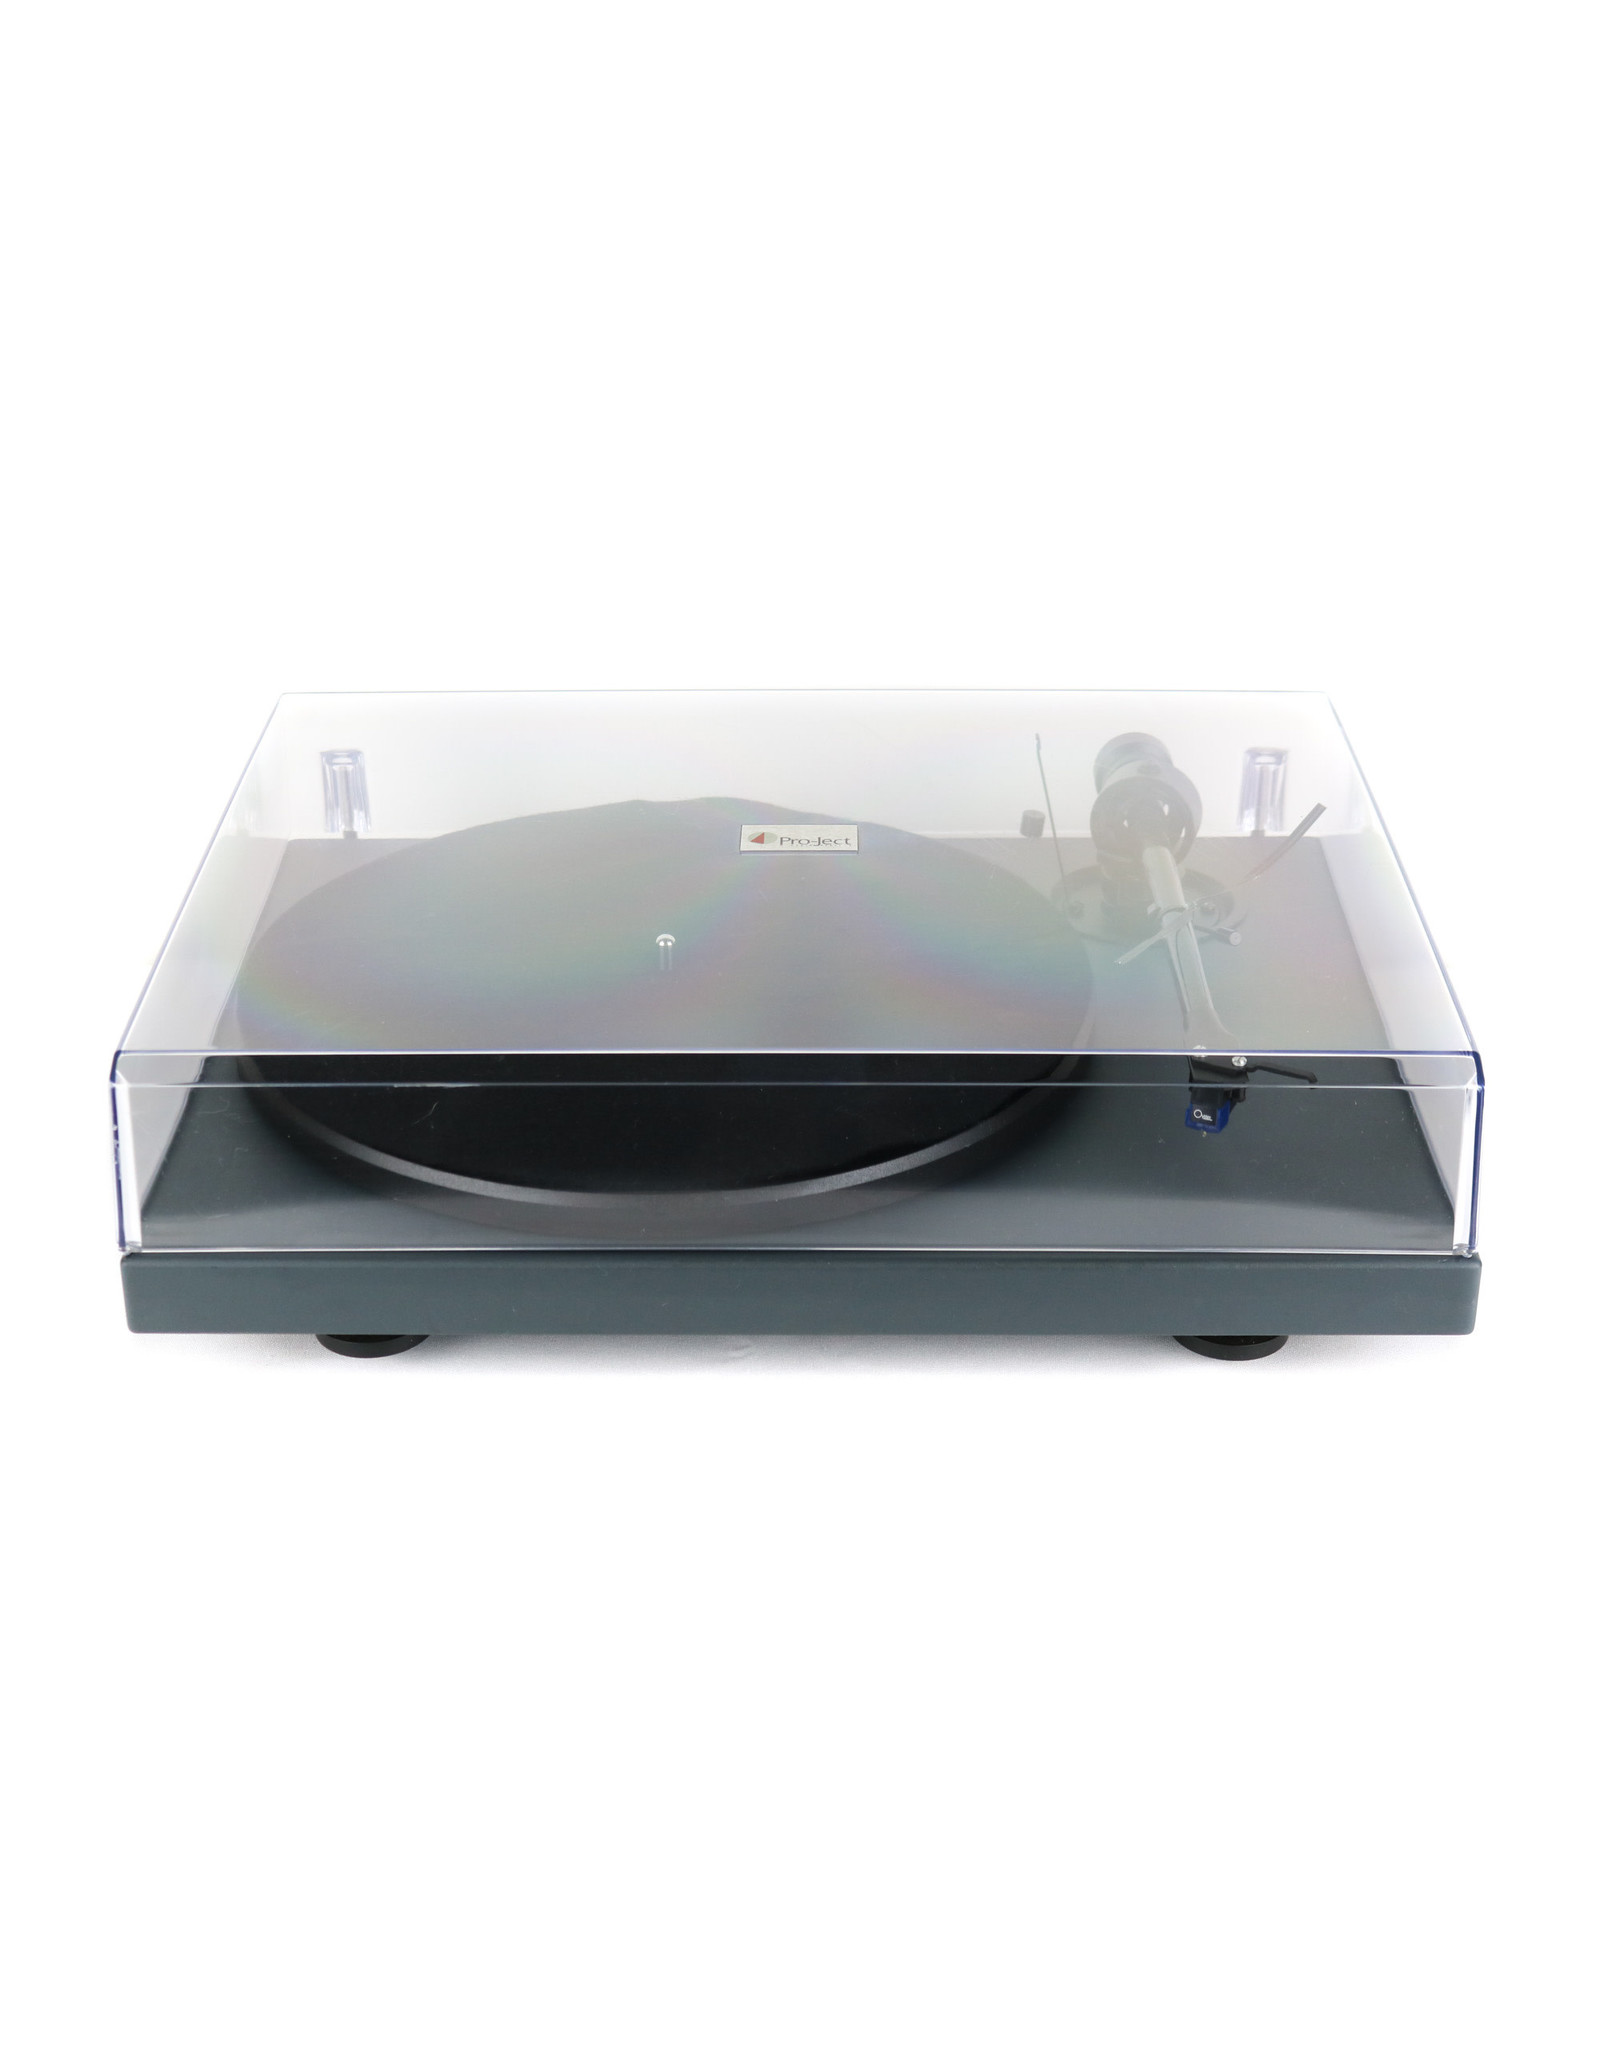 Pro-Ject Pro-Ject 1Xpression mkII Turntable USED